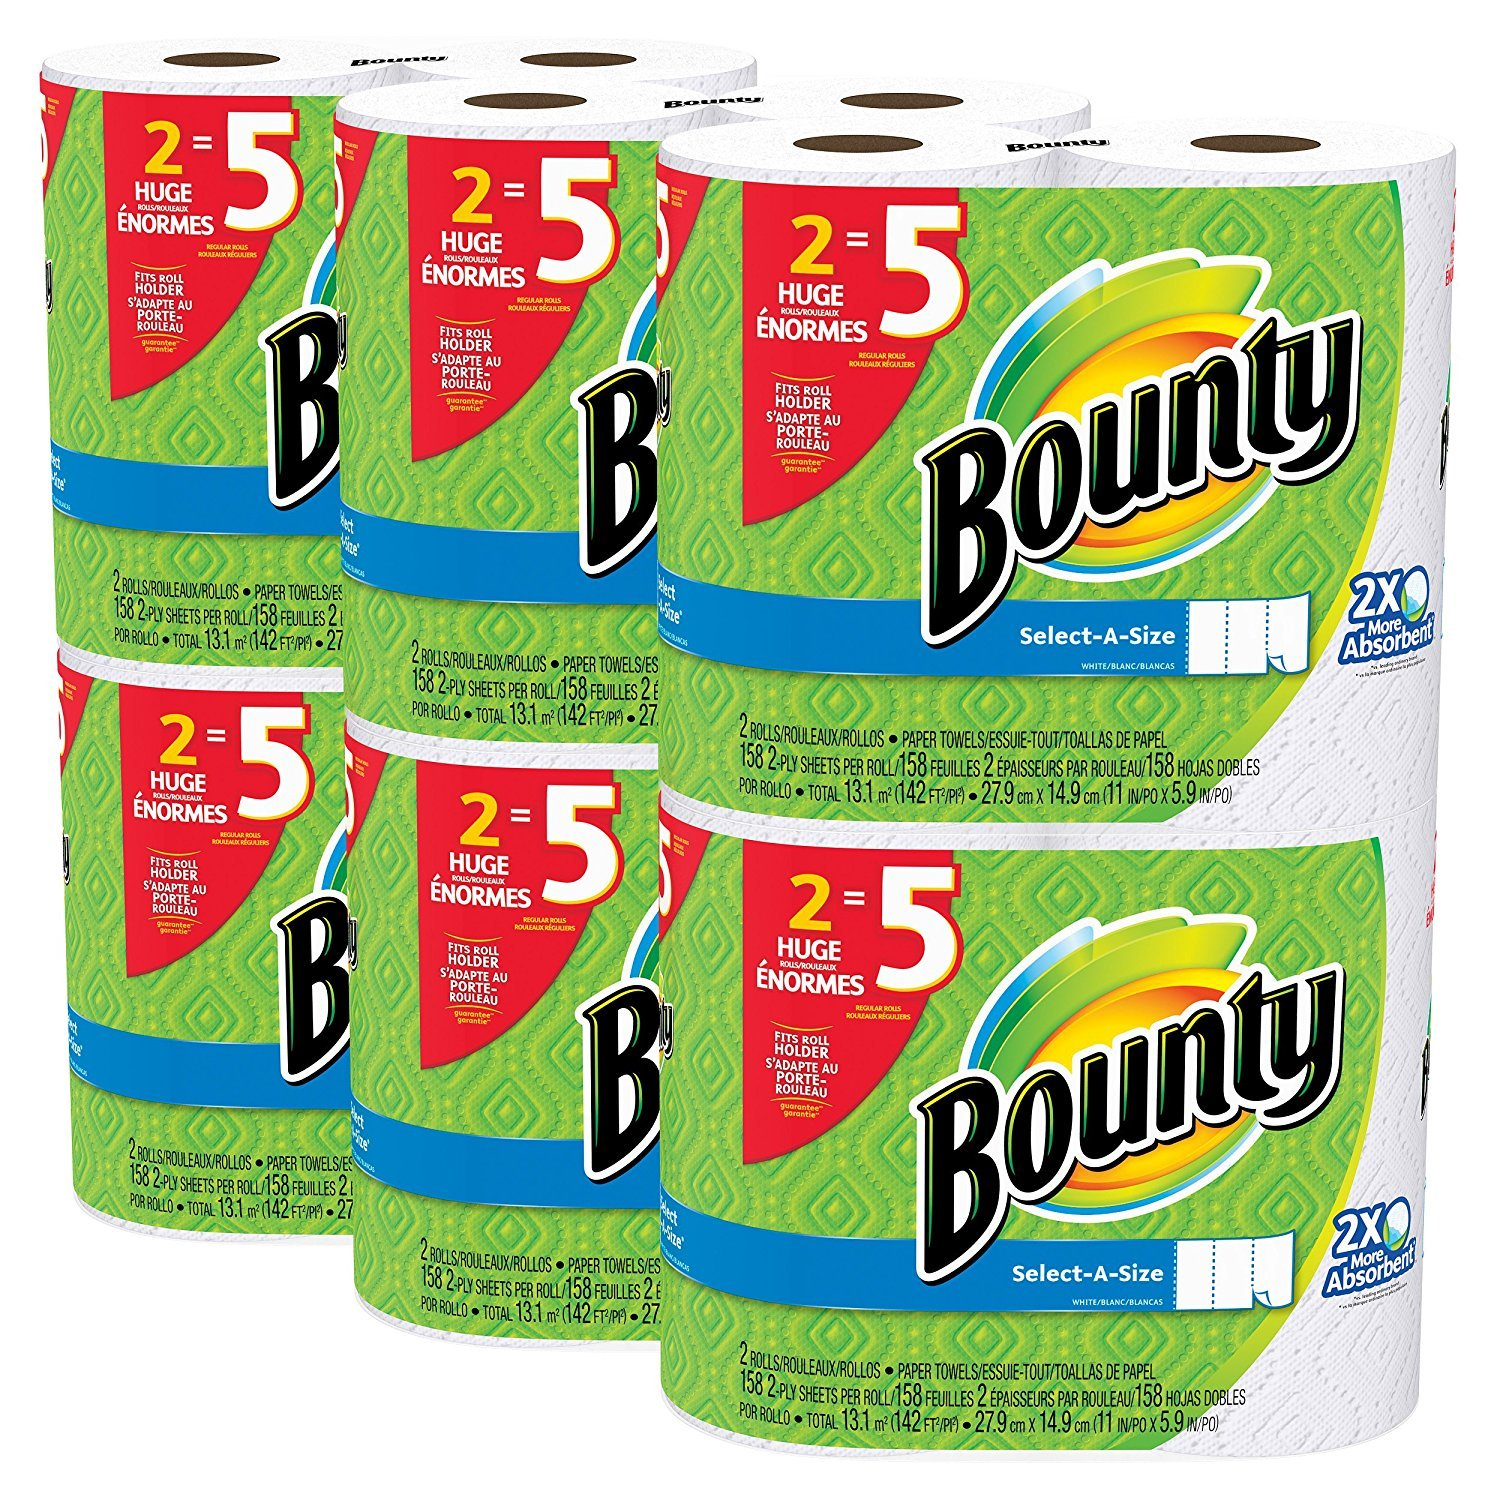 Amazon.com: Bounty Select-a-Size Paper Towels ngzEmF, White, Huge Roll, 24 Count: Home & Kitchen